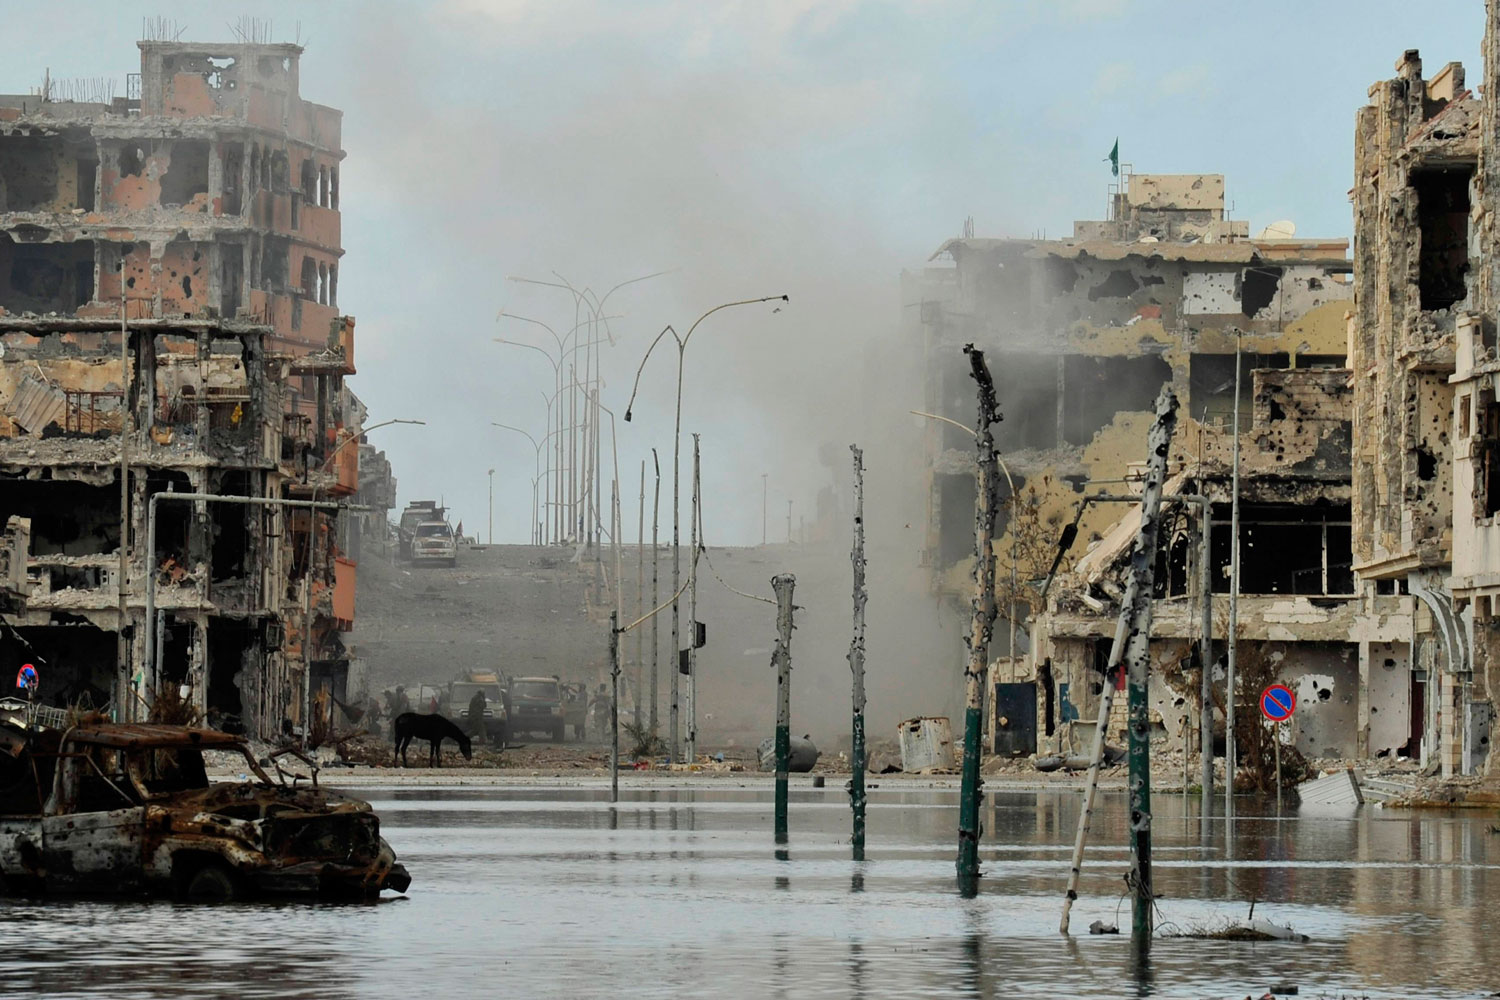 October 18, 2011. The view of a street after clashes between Libyan interim government forces and loyalists of Muammar Gaddafi in Sirt.